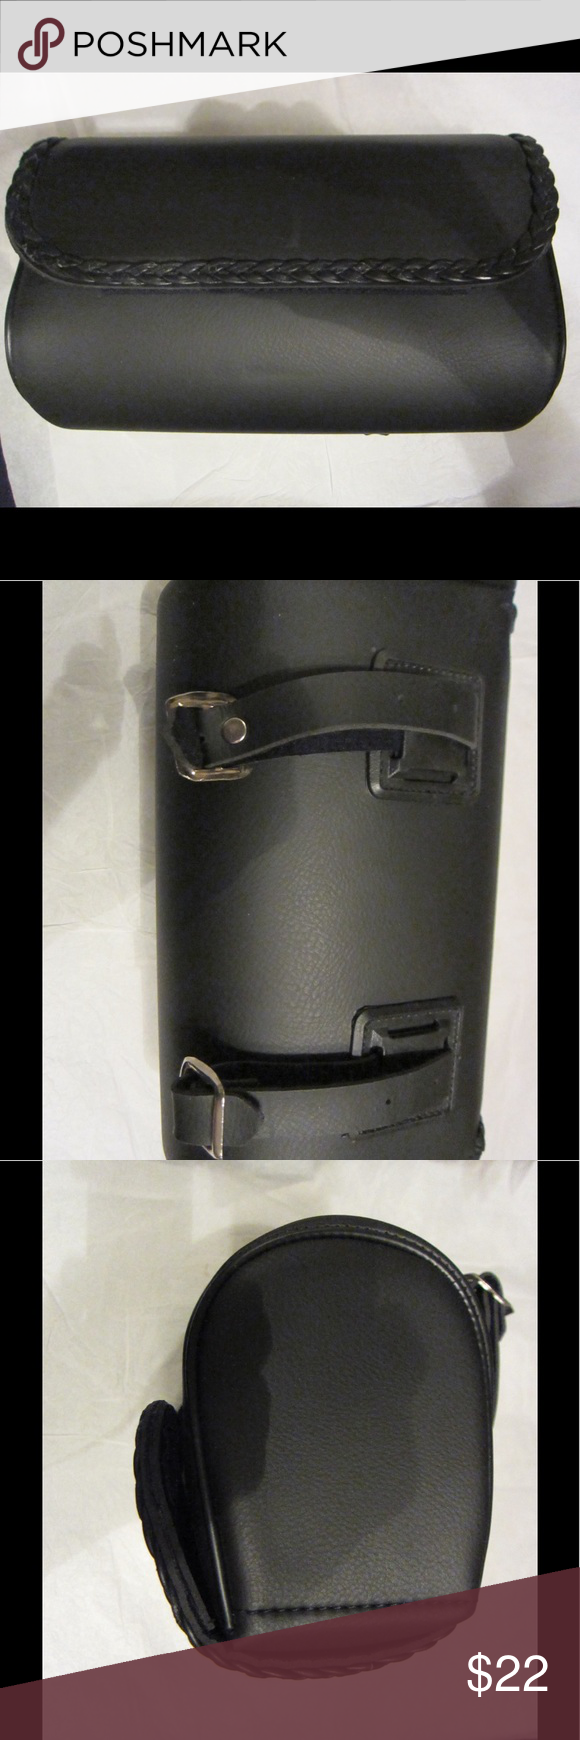 Leather bike/motorcycle/scooter handle bar bag. Very